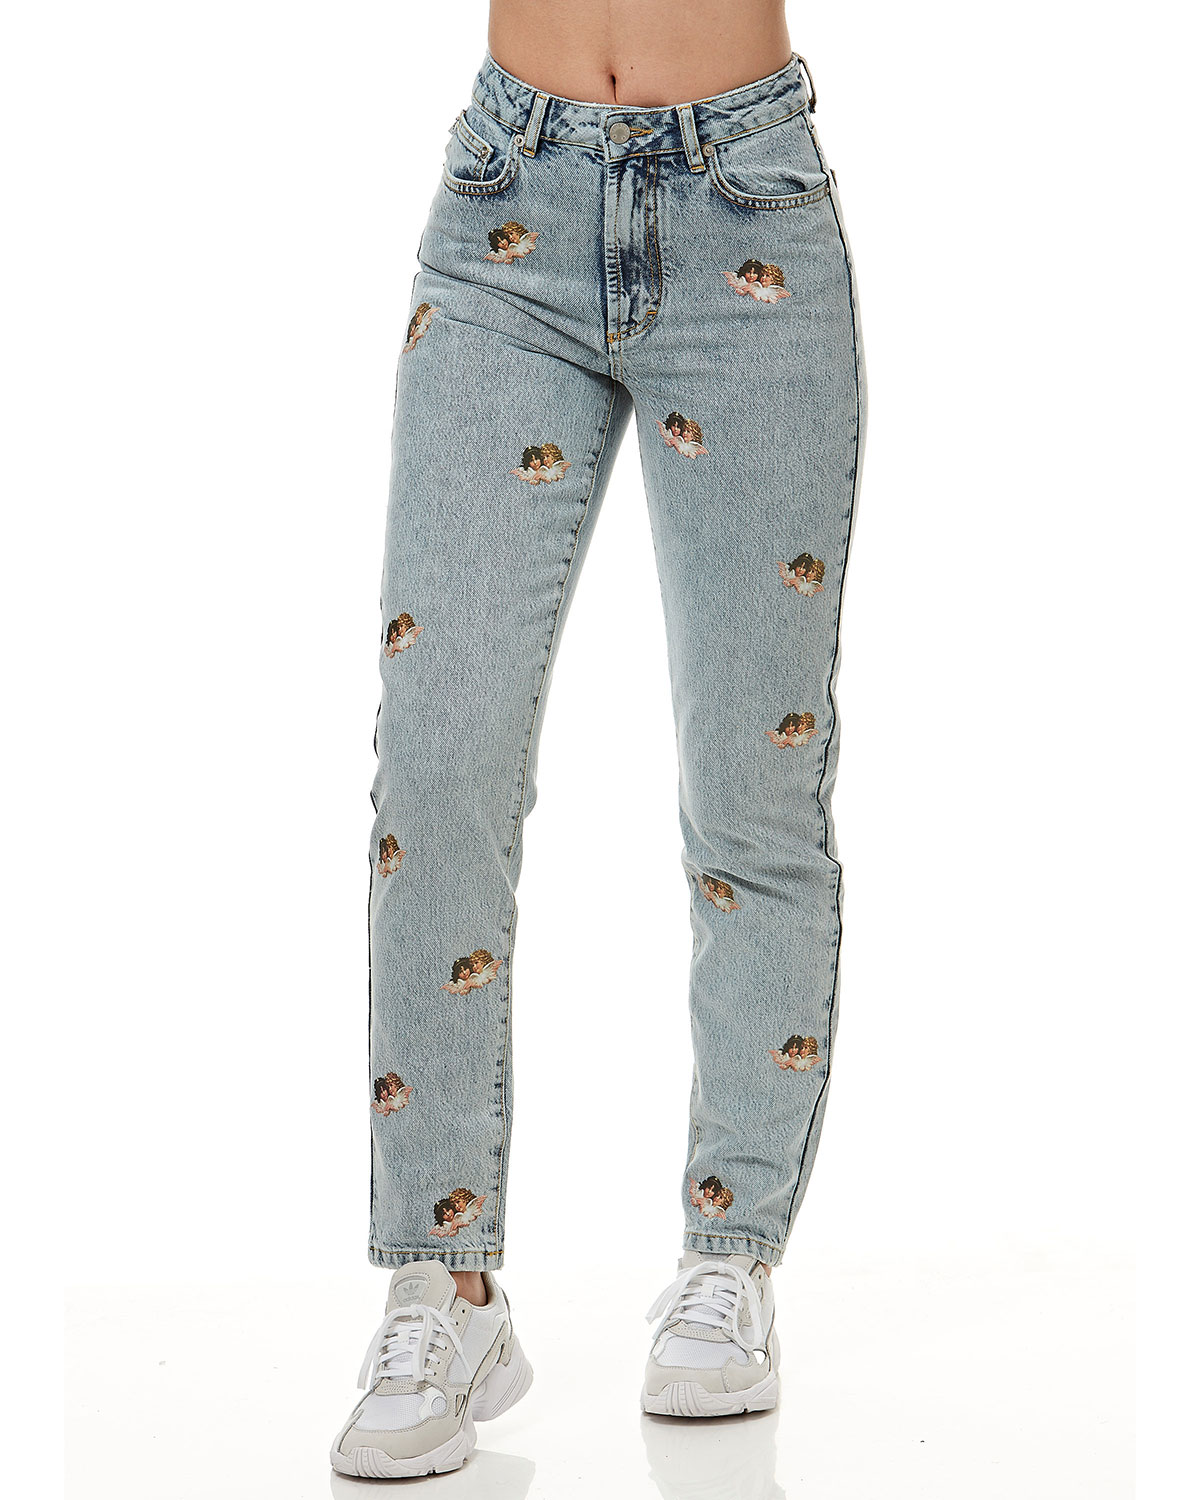 Fiorucci Tara Mini Angels Light Vintage Jeans